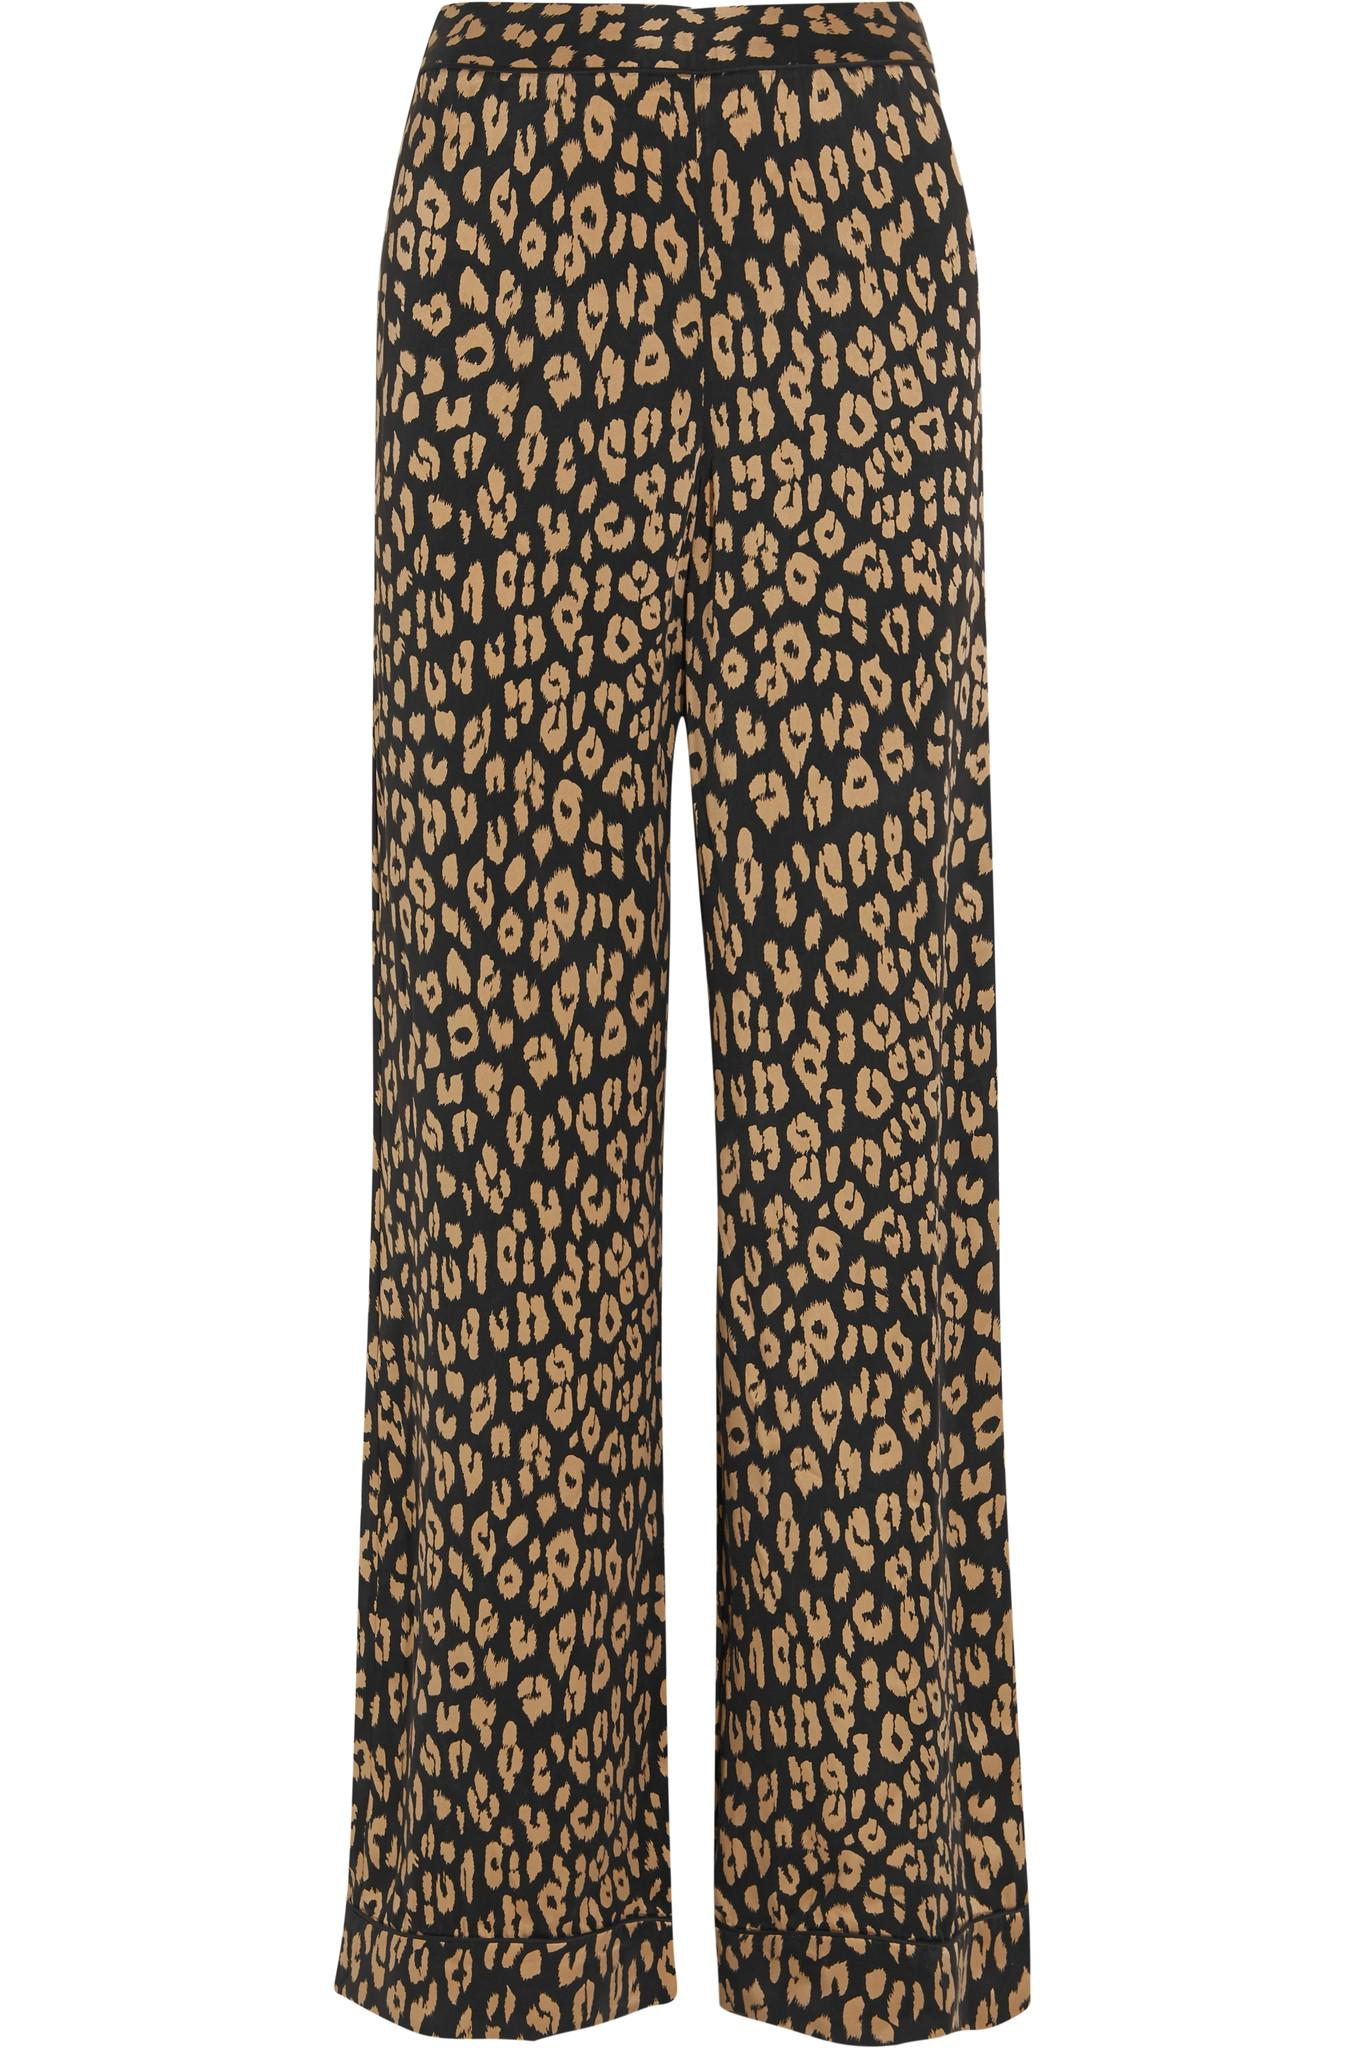 Lyst - Equipment + Kate Moss Avery Leopard-print Washed-silk Pajama ... 6d0898c03